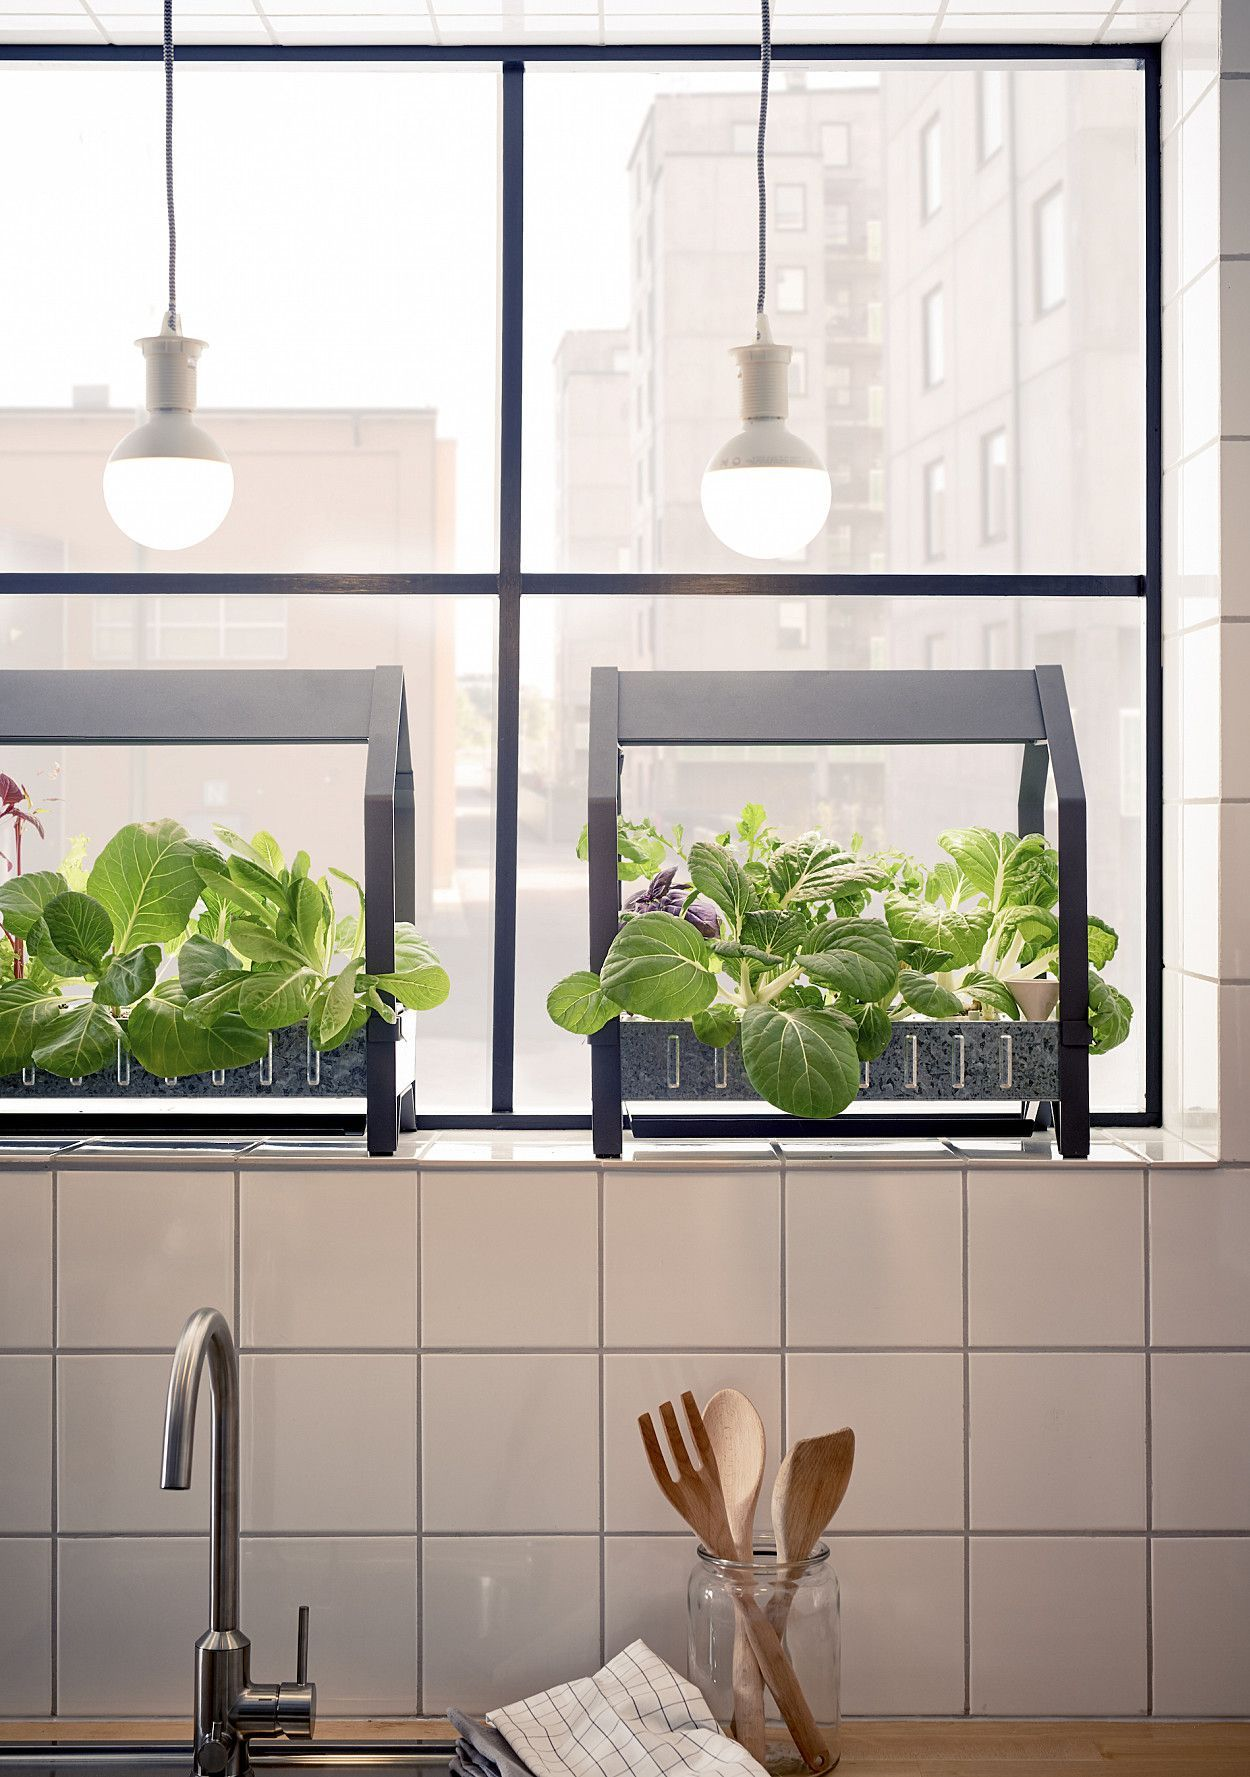 ikea is taking indoor gardening to the next level with its cool new hydroponic gardening kits - Ikea Indoor Garden